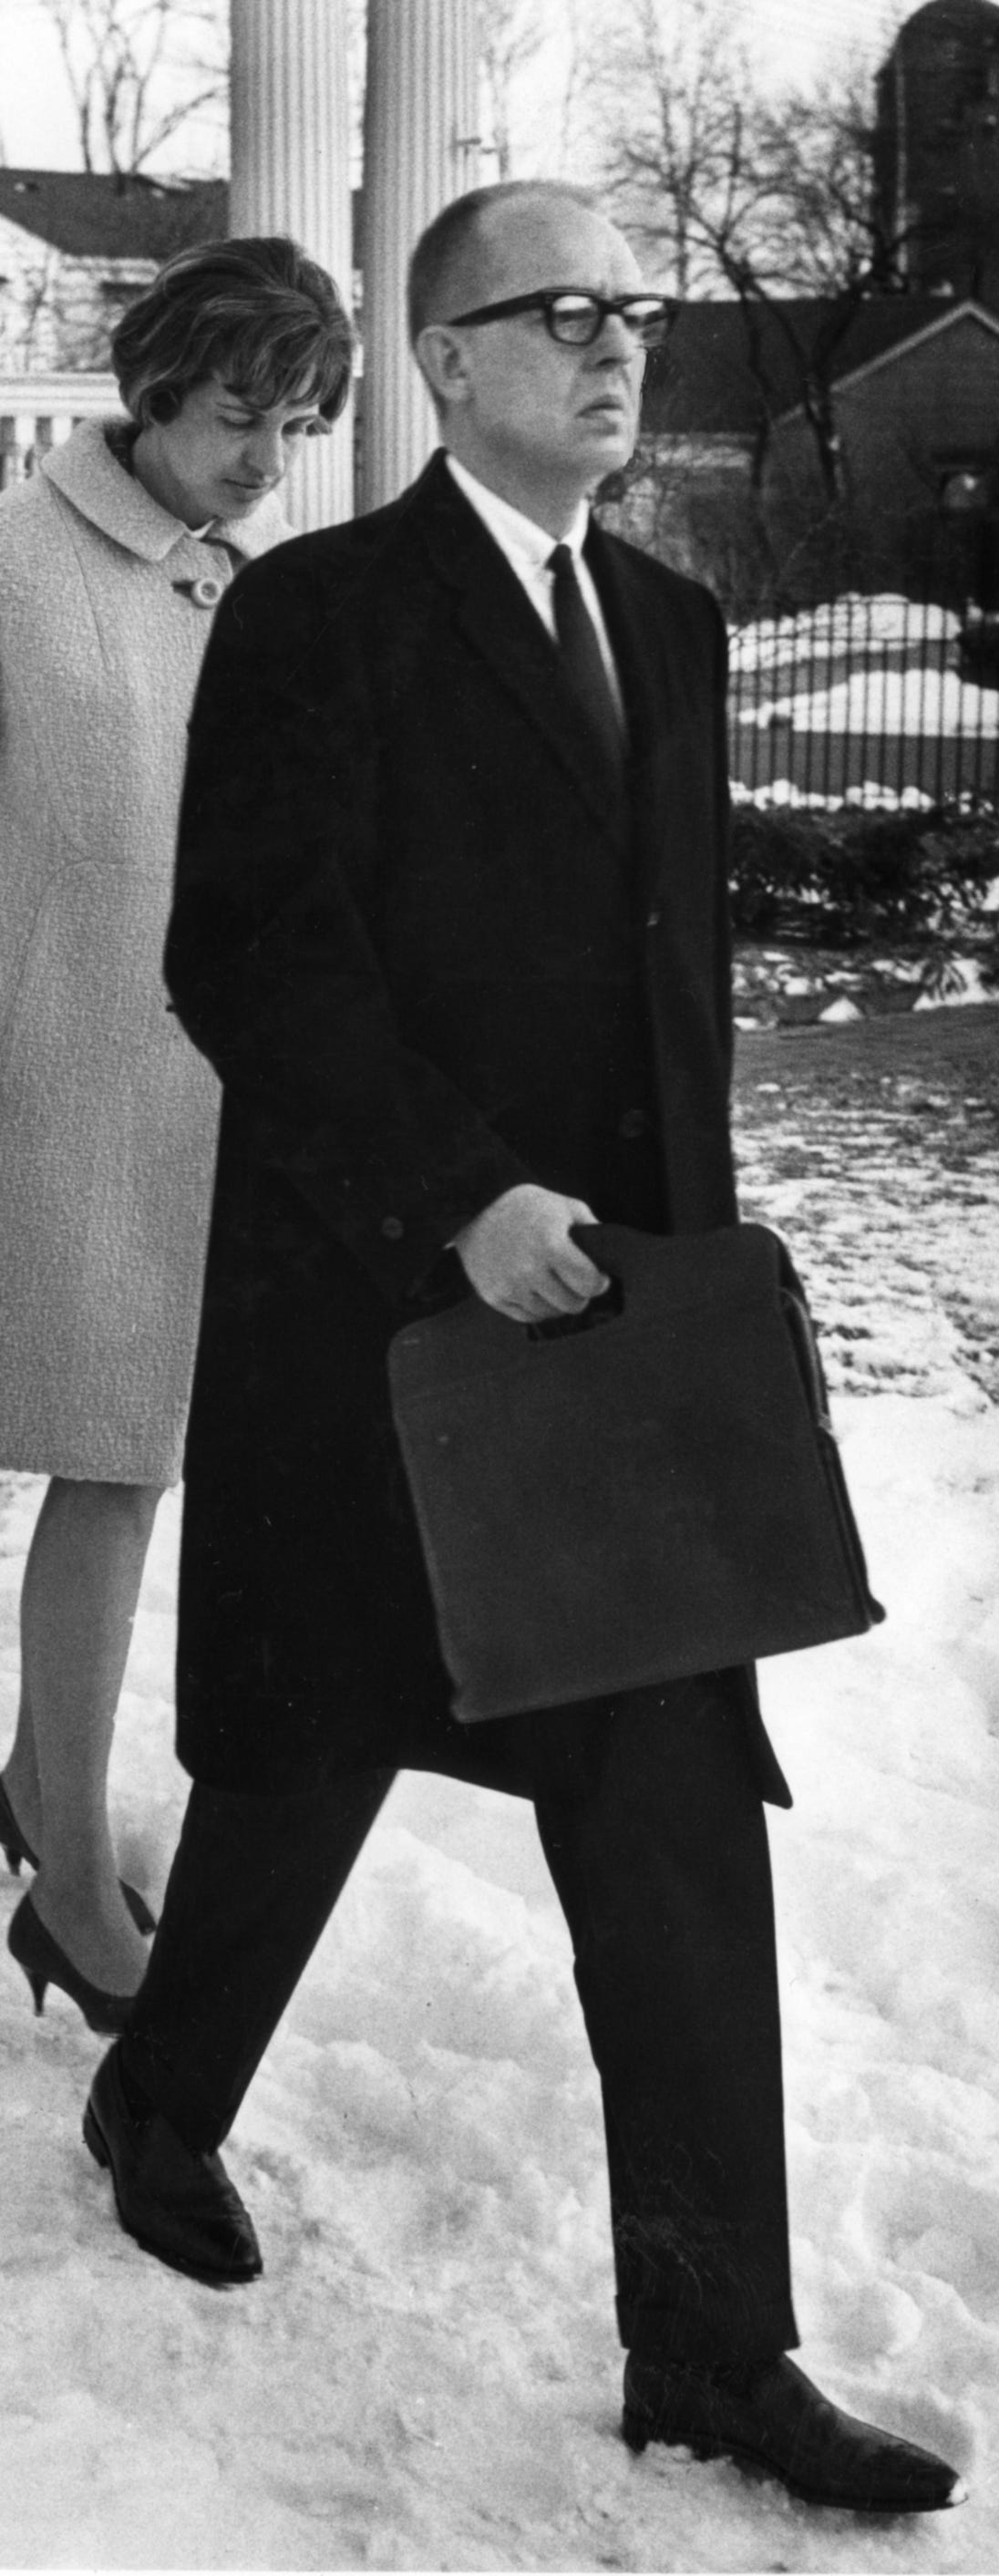 August K. Bergenthal, accused in the deadly September 1968 shooting of Milwaukee industrialist Russell D.L. Wirth, exits the Wirth family home, where the shooting took place, after an inspection of the East Side home by the jury in his murder trial on March 26, 1969. Wirth's wife, Mary, was wounded in the shooting. This photo was published in the March 27, 1969, Milwaukee Journal.